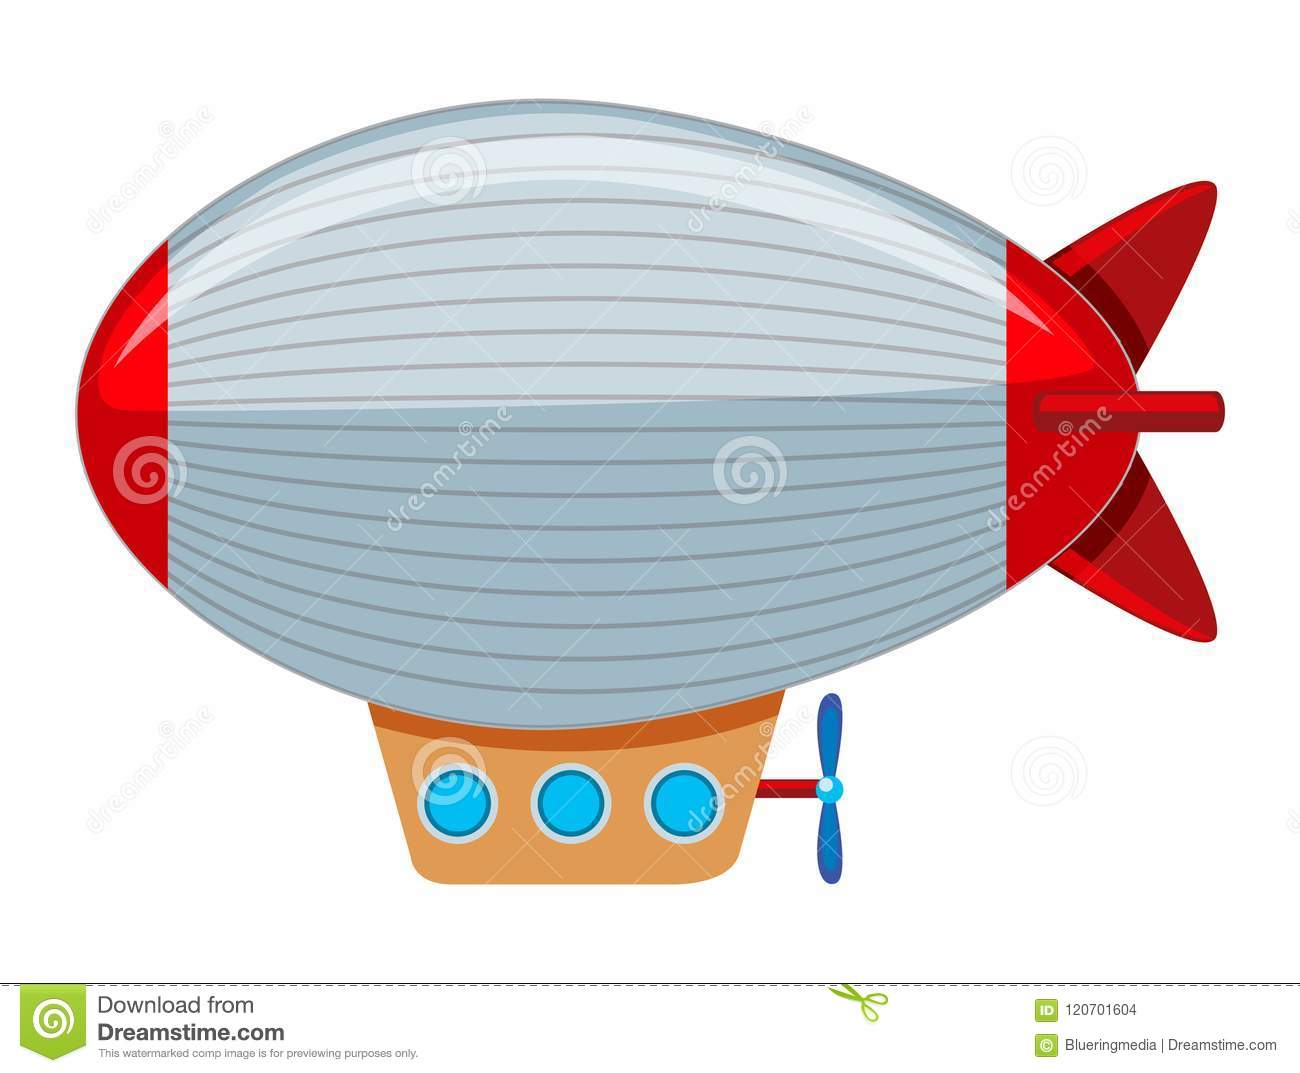 A large grey and red blimp stock vector. Illustration of clipart.